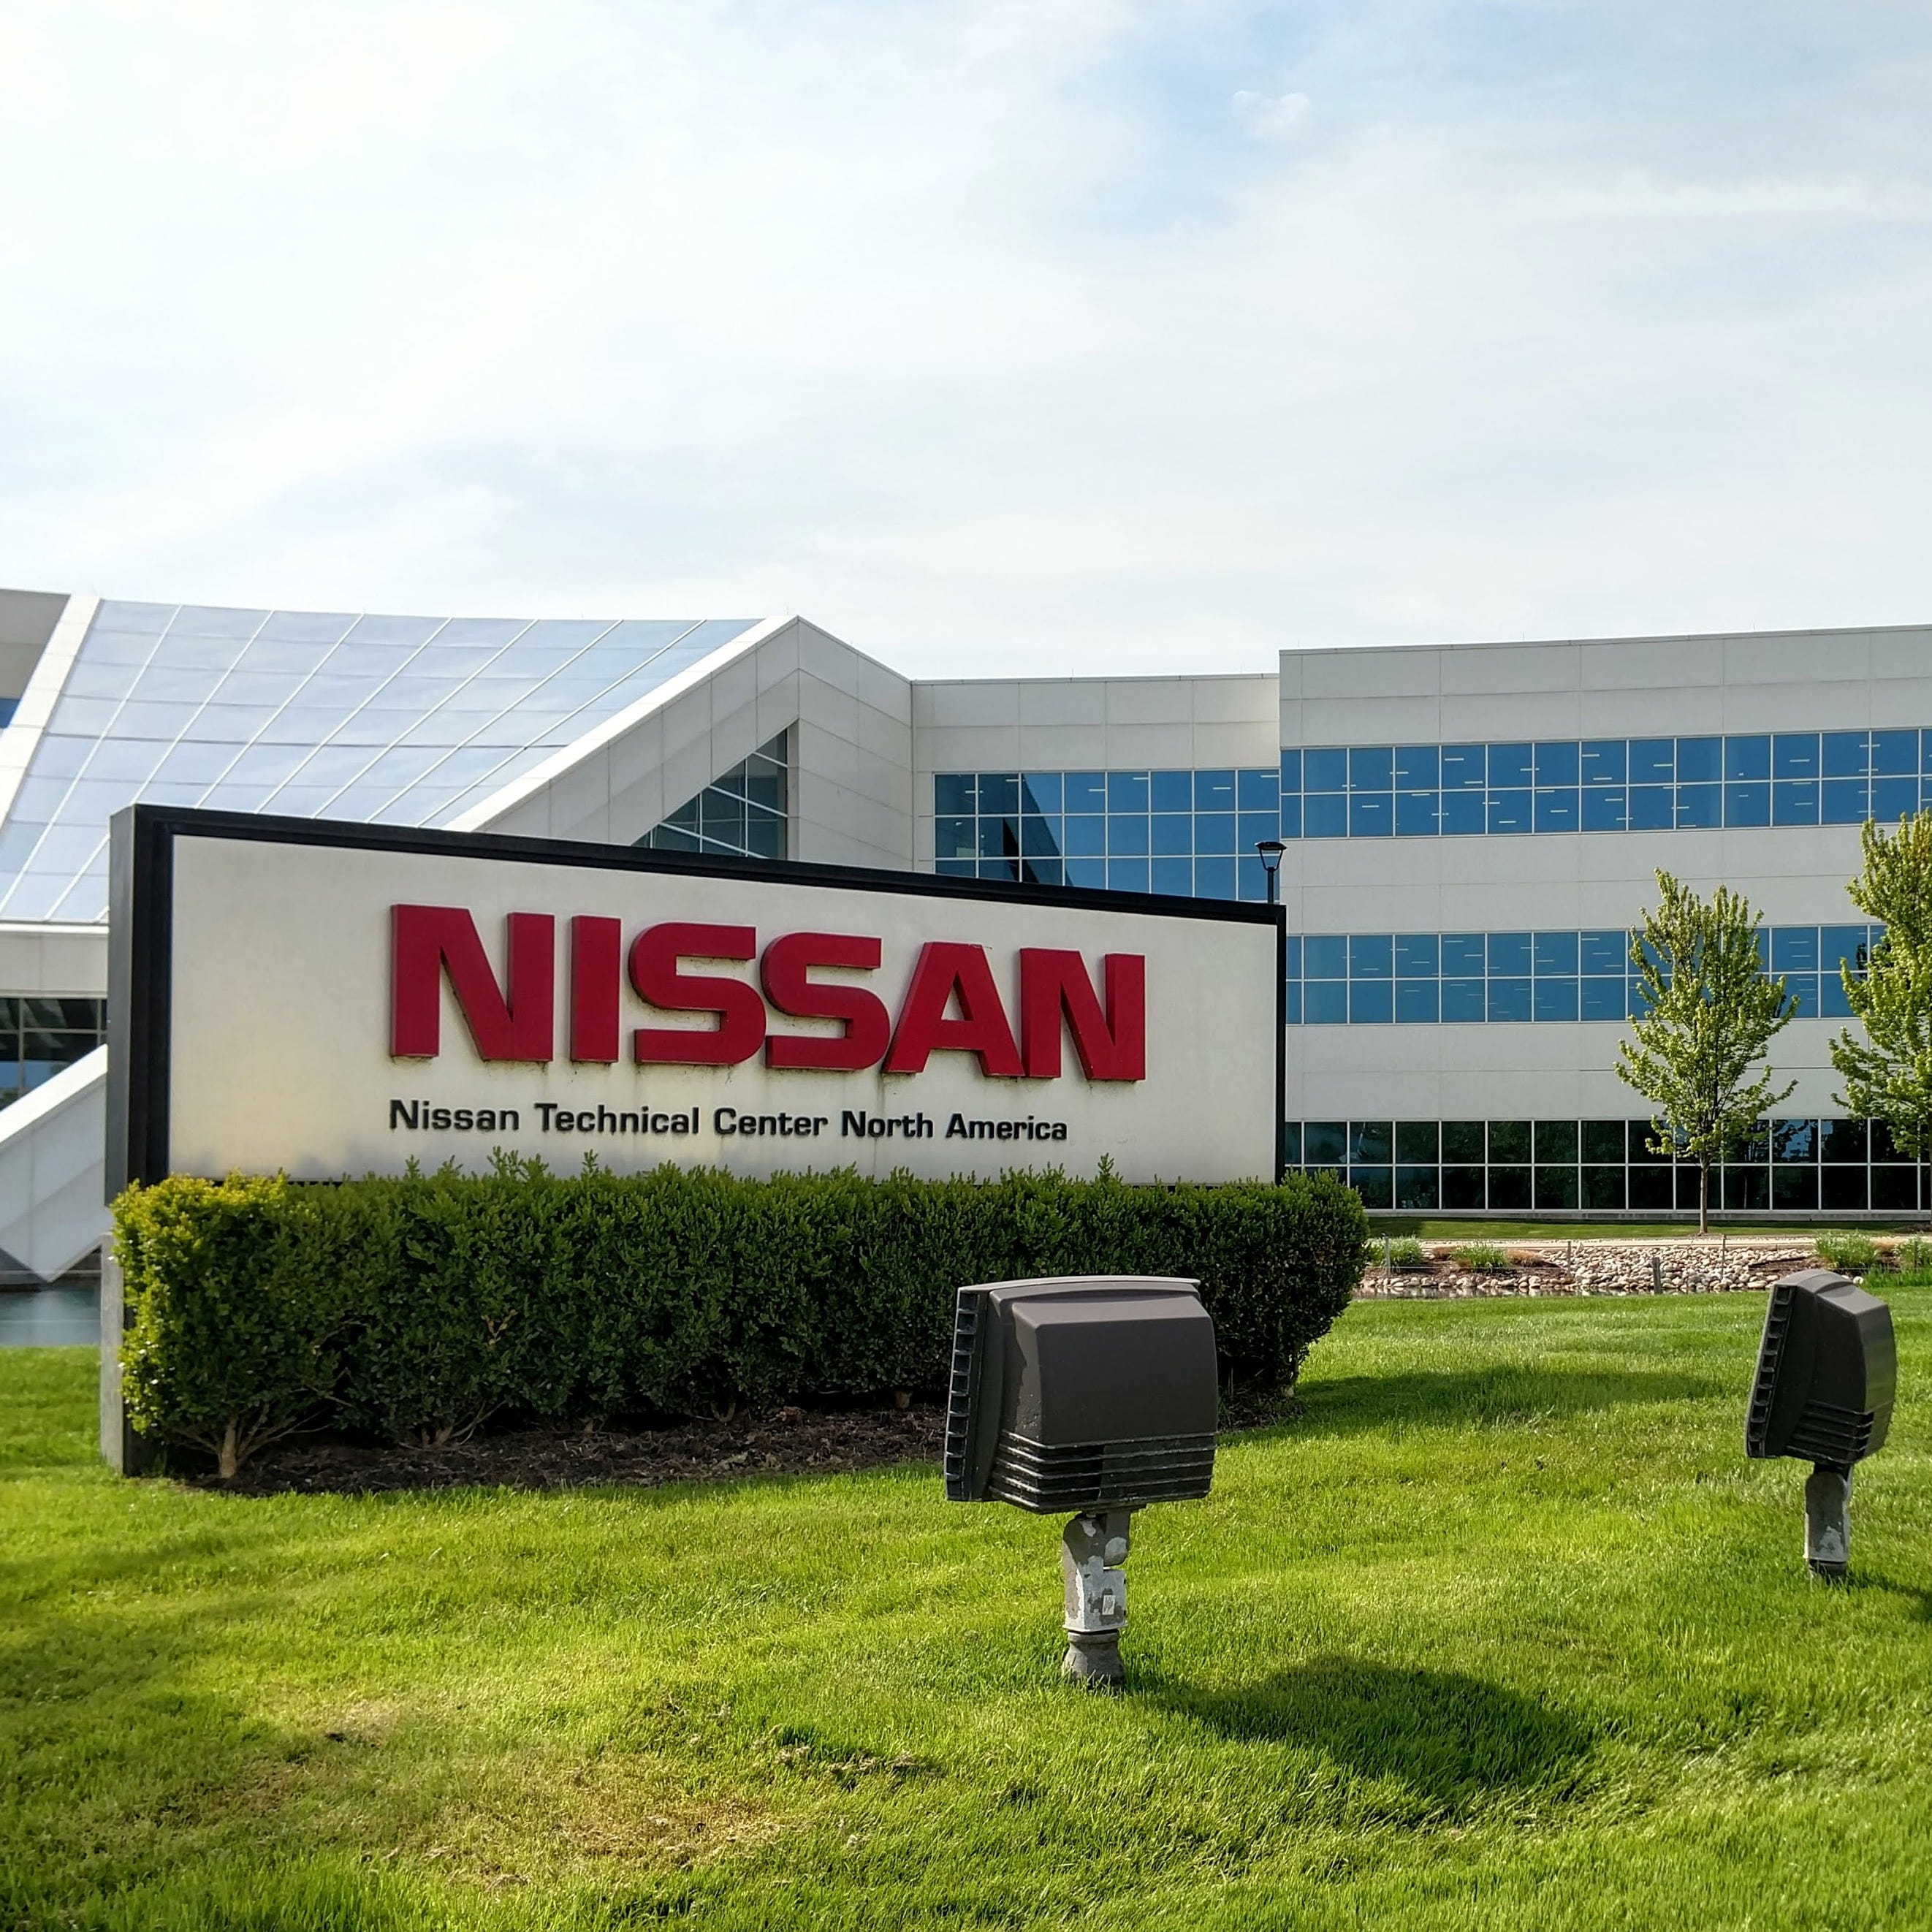 Nissan's $41 million expansion plans keeps its research hub in Farmington Hills